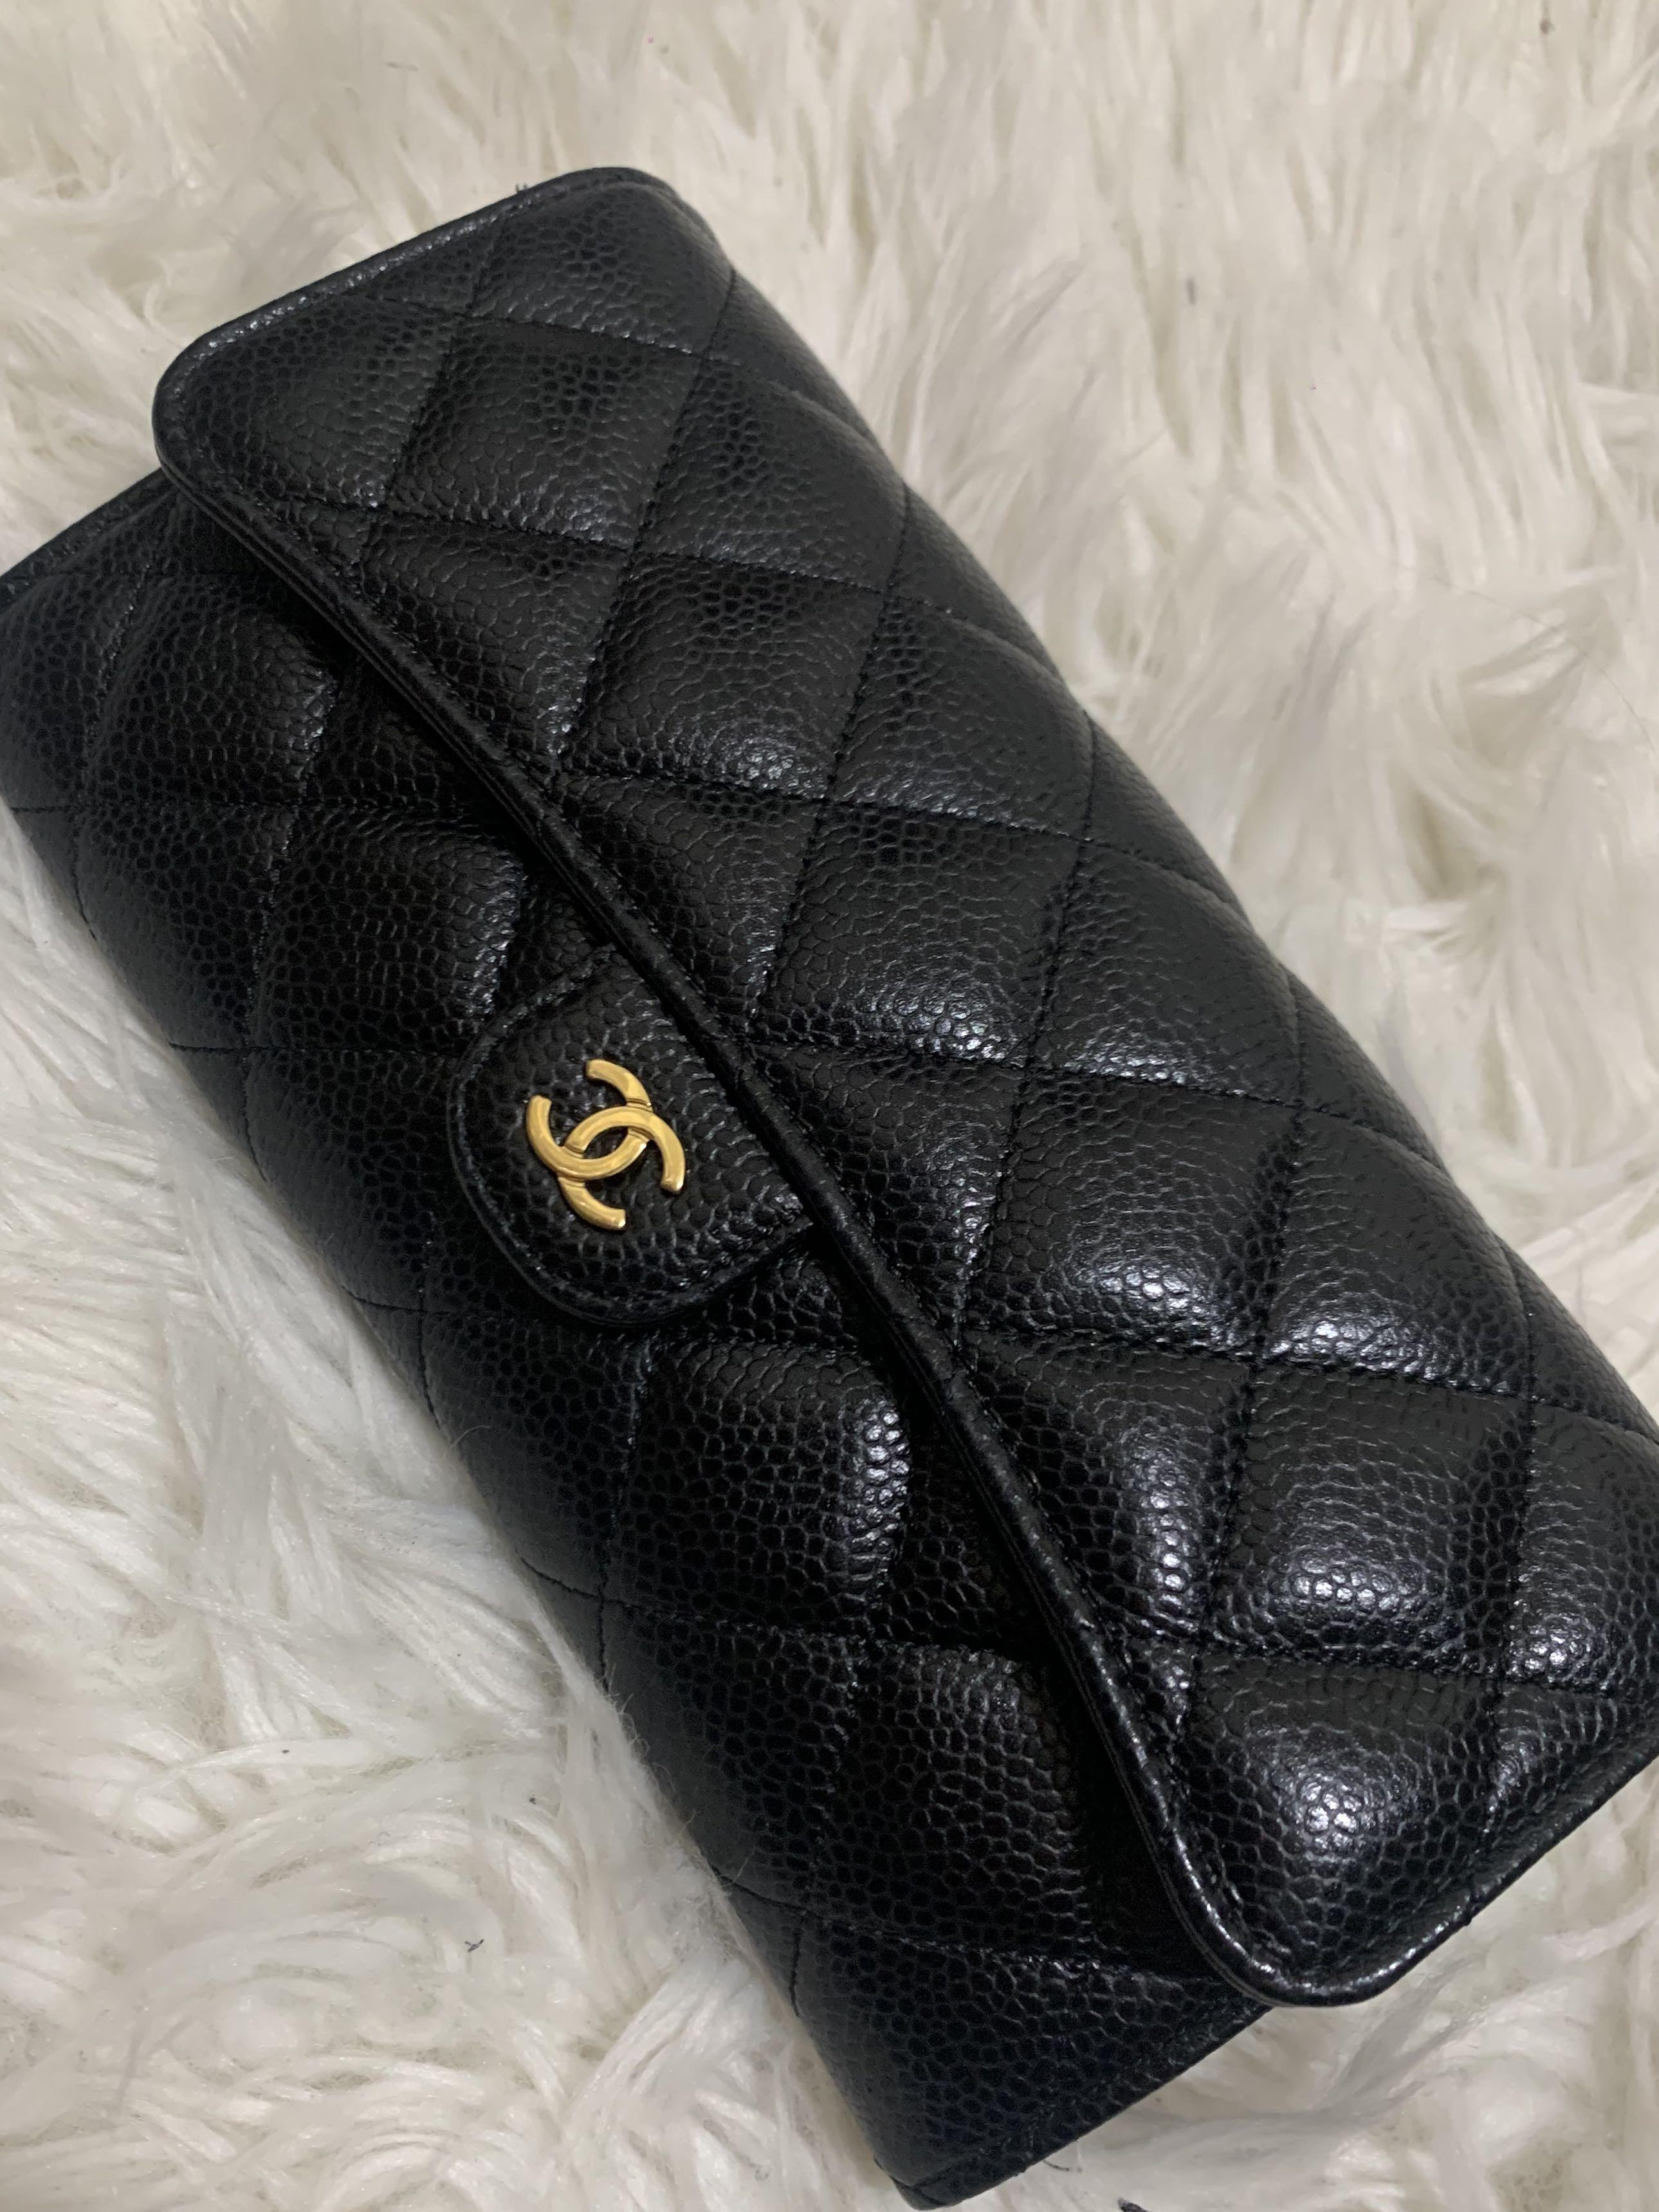 Chanel 長夾錢包